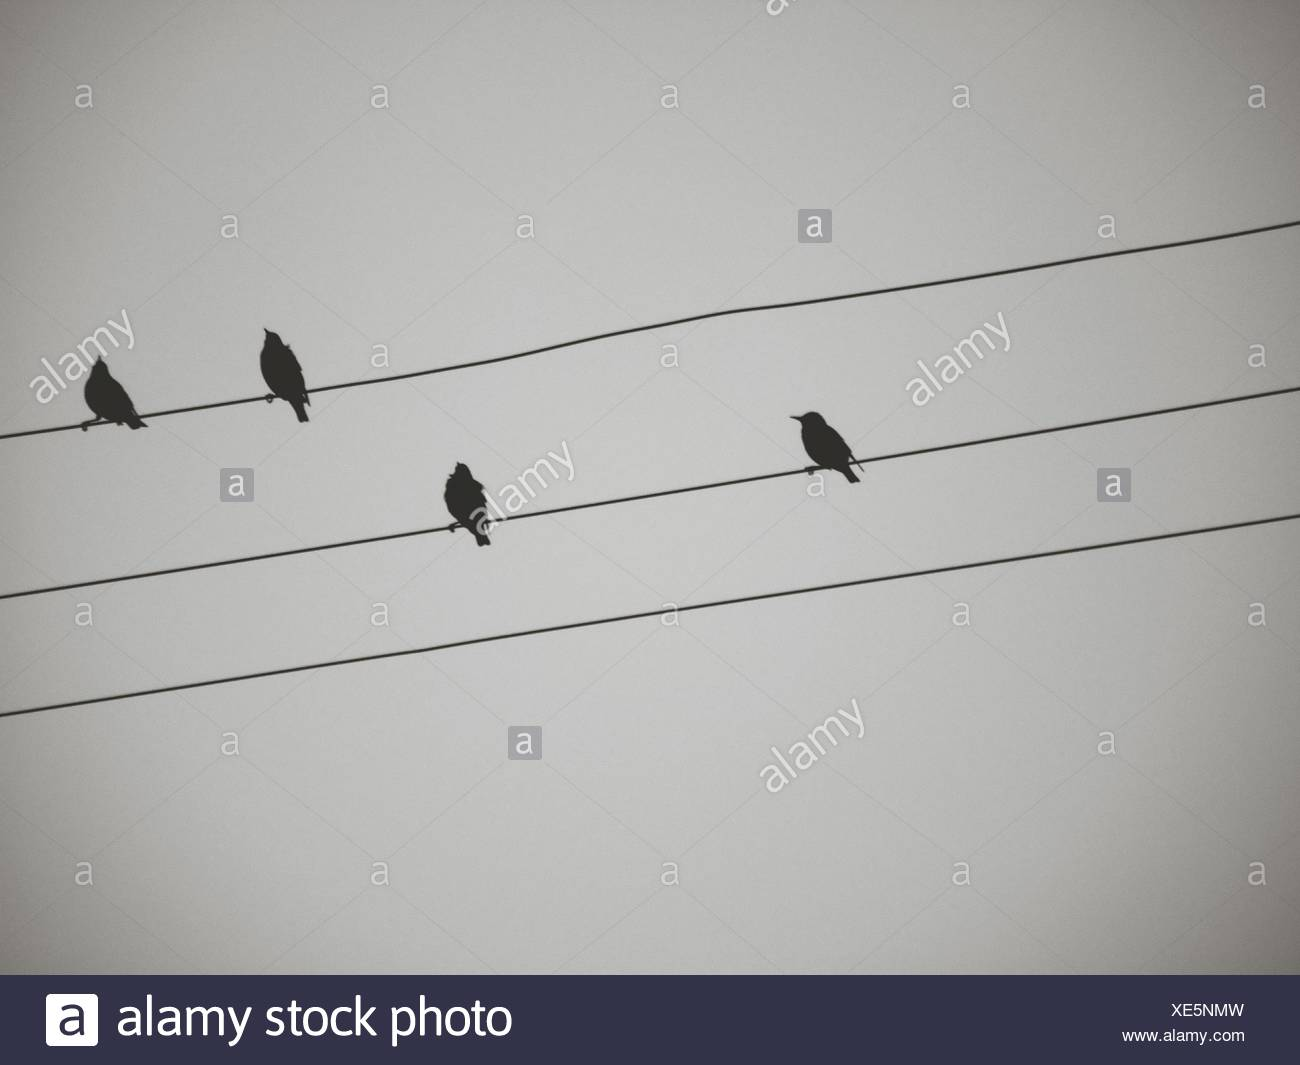 Low Angle View Of Silhouette Birds Perching On Power Lines Against Sky - Stock Image